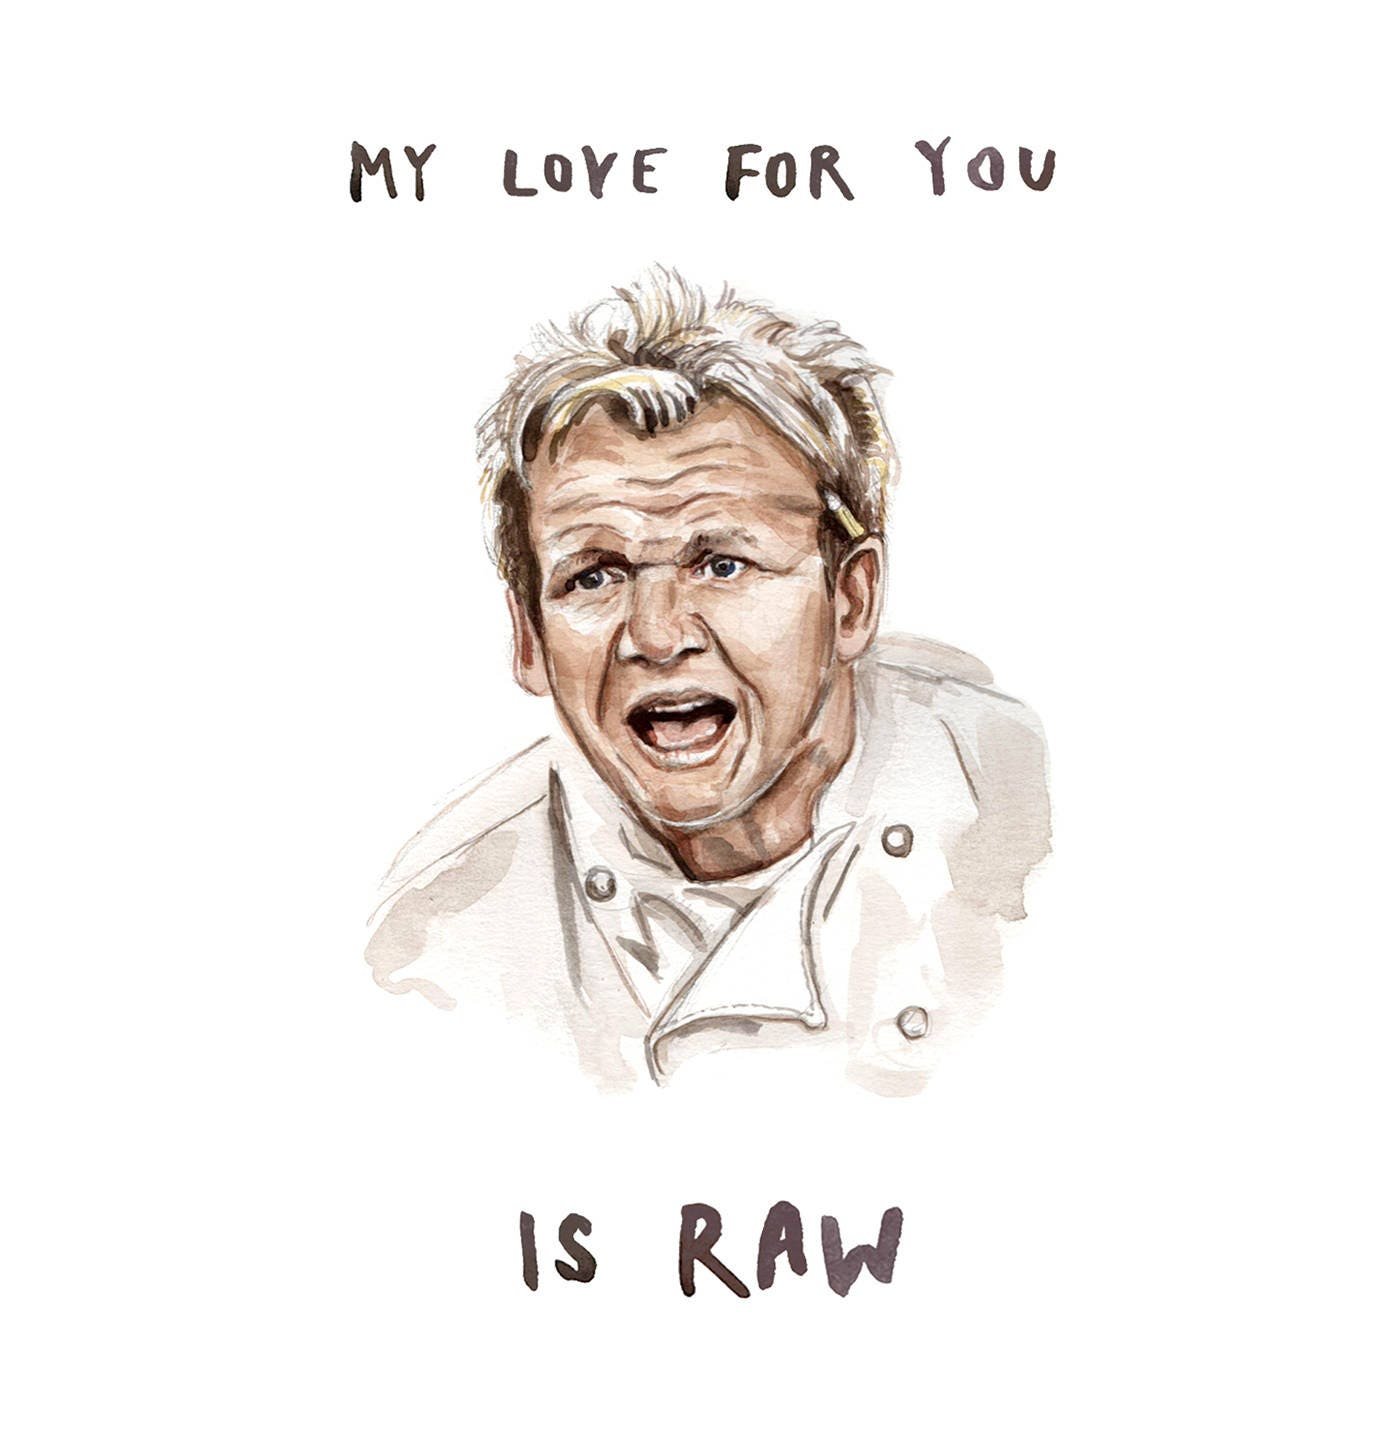 My Love for you is RAW Gordan Ramsay Greeting Card Funny